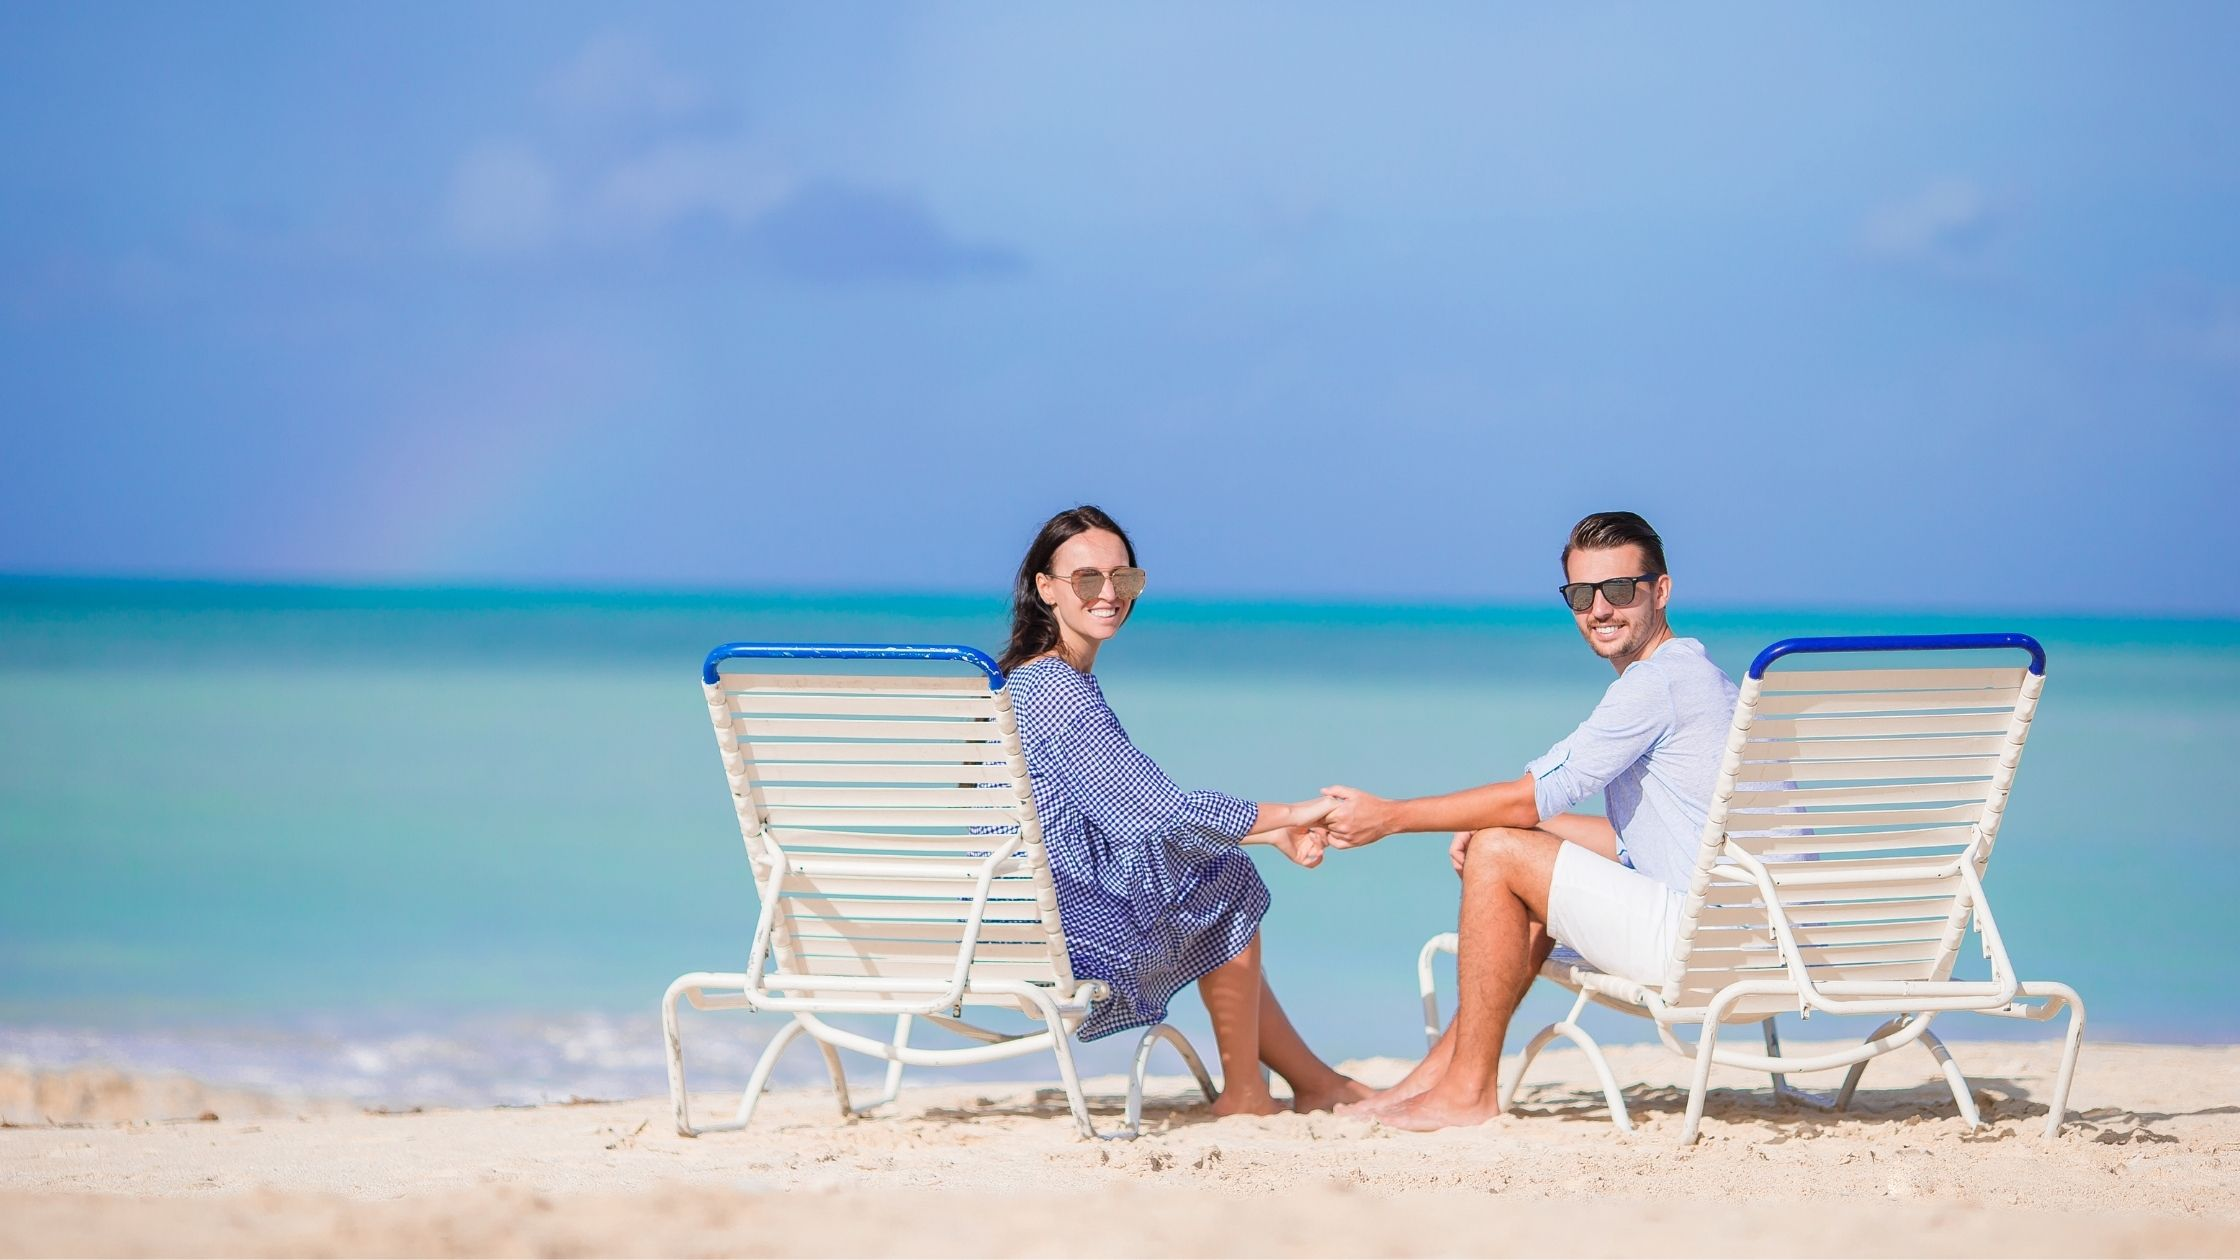 What to do in Maldives for Honeymoon - Activities & Things to do in Maldives for Honeymoon